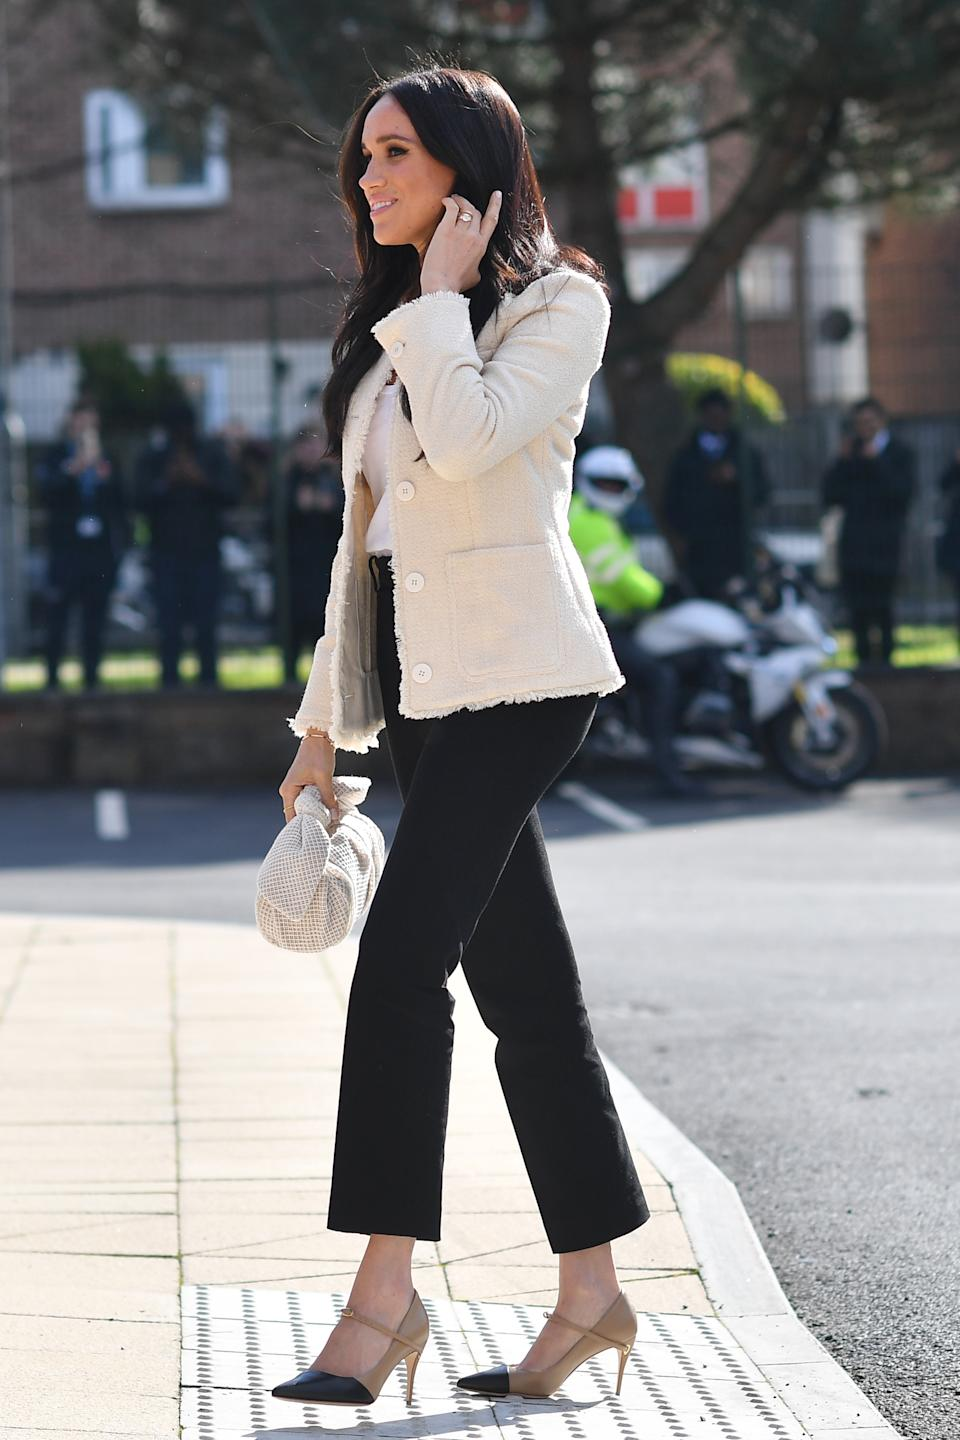 Meghan, Duchess of Sussex, visited the the Robert Clack Upper School in Dagenham to attend a special assembly ahead of International Women's Day in March 6, 2020 in London, England, wearing Me+Em blazer.   (Getty Images)